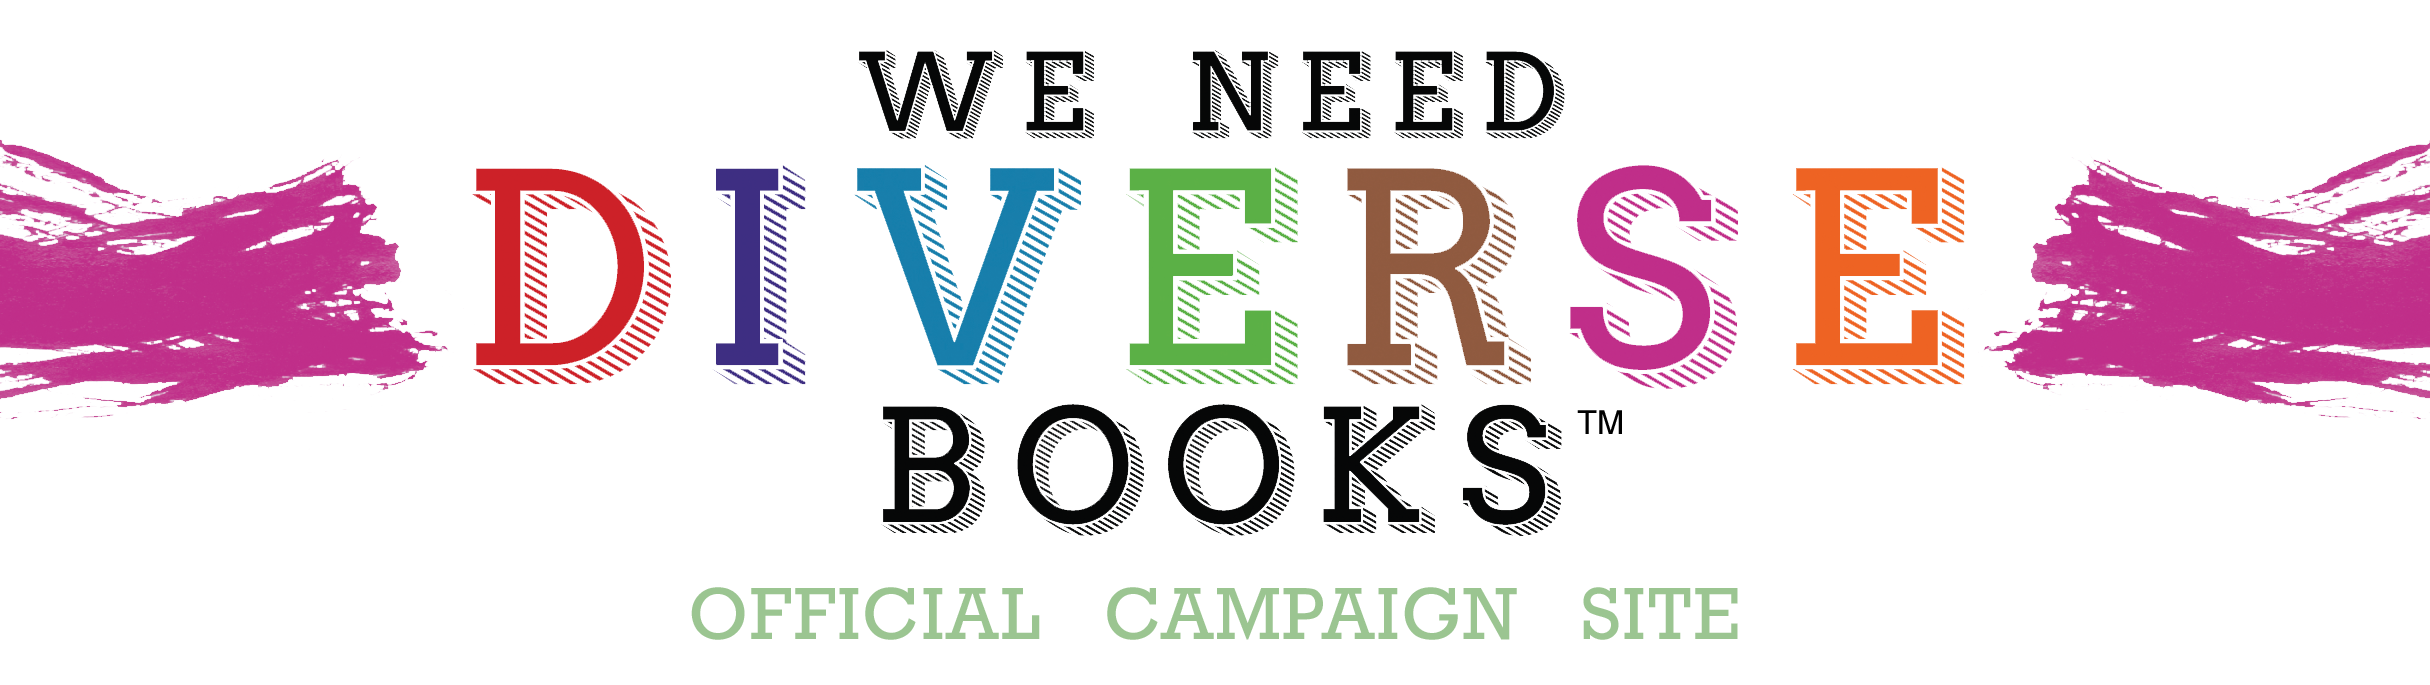 We Need Diverse Books Demands Equality in Literature